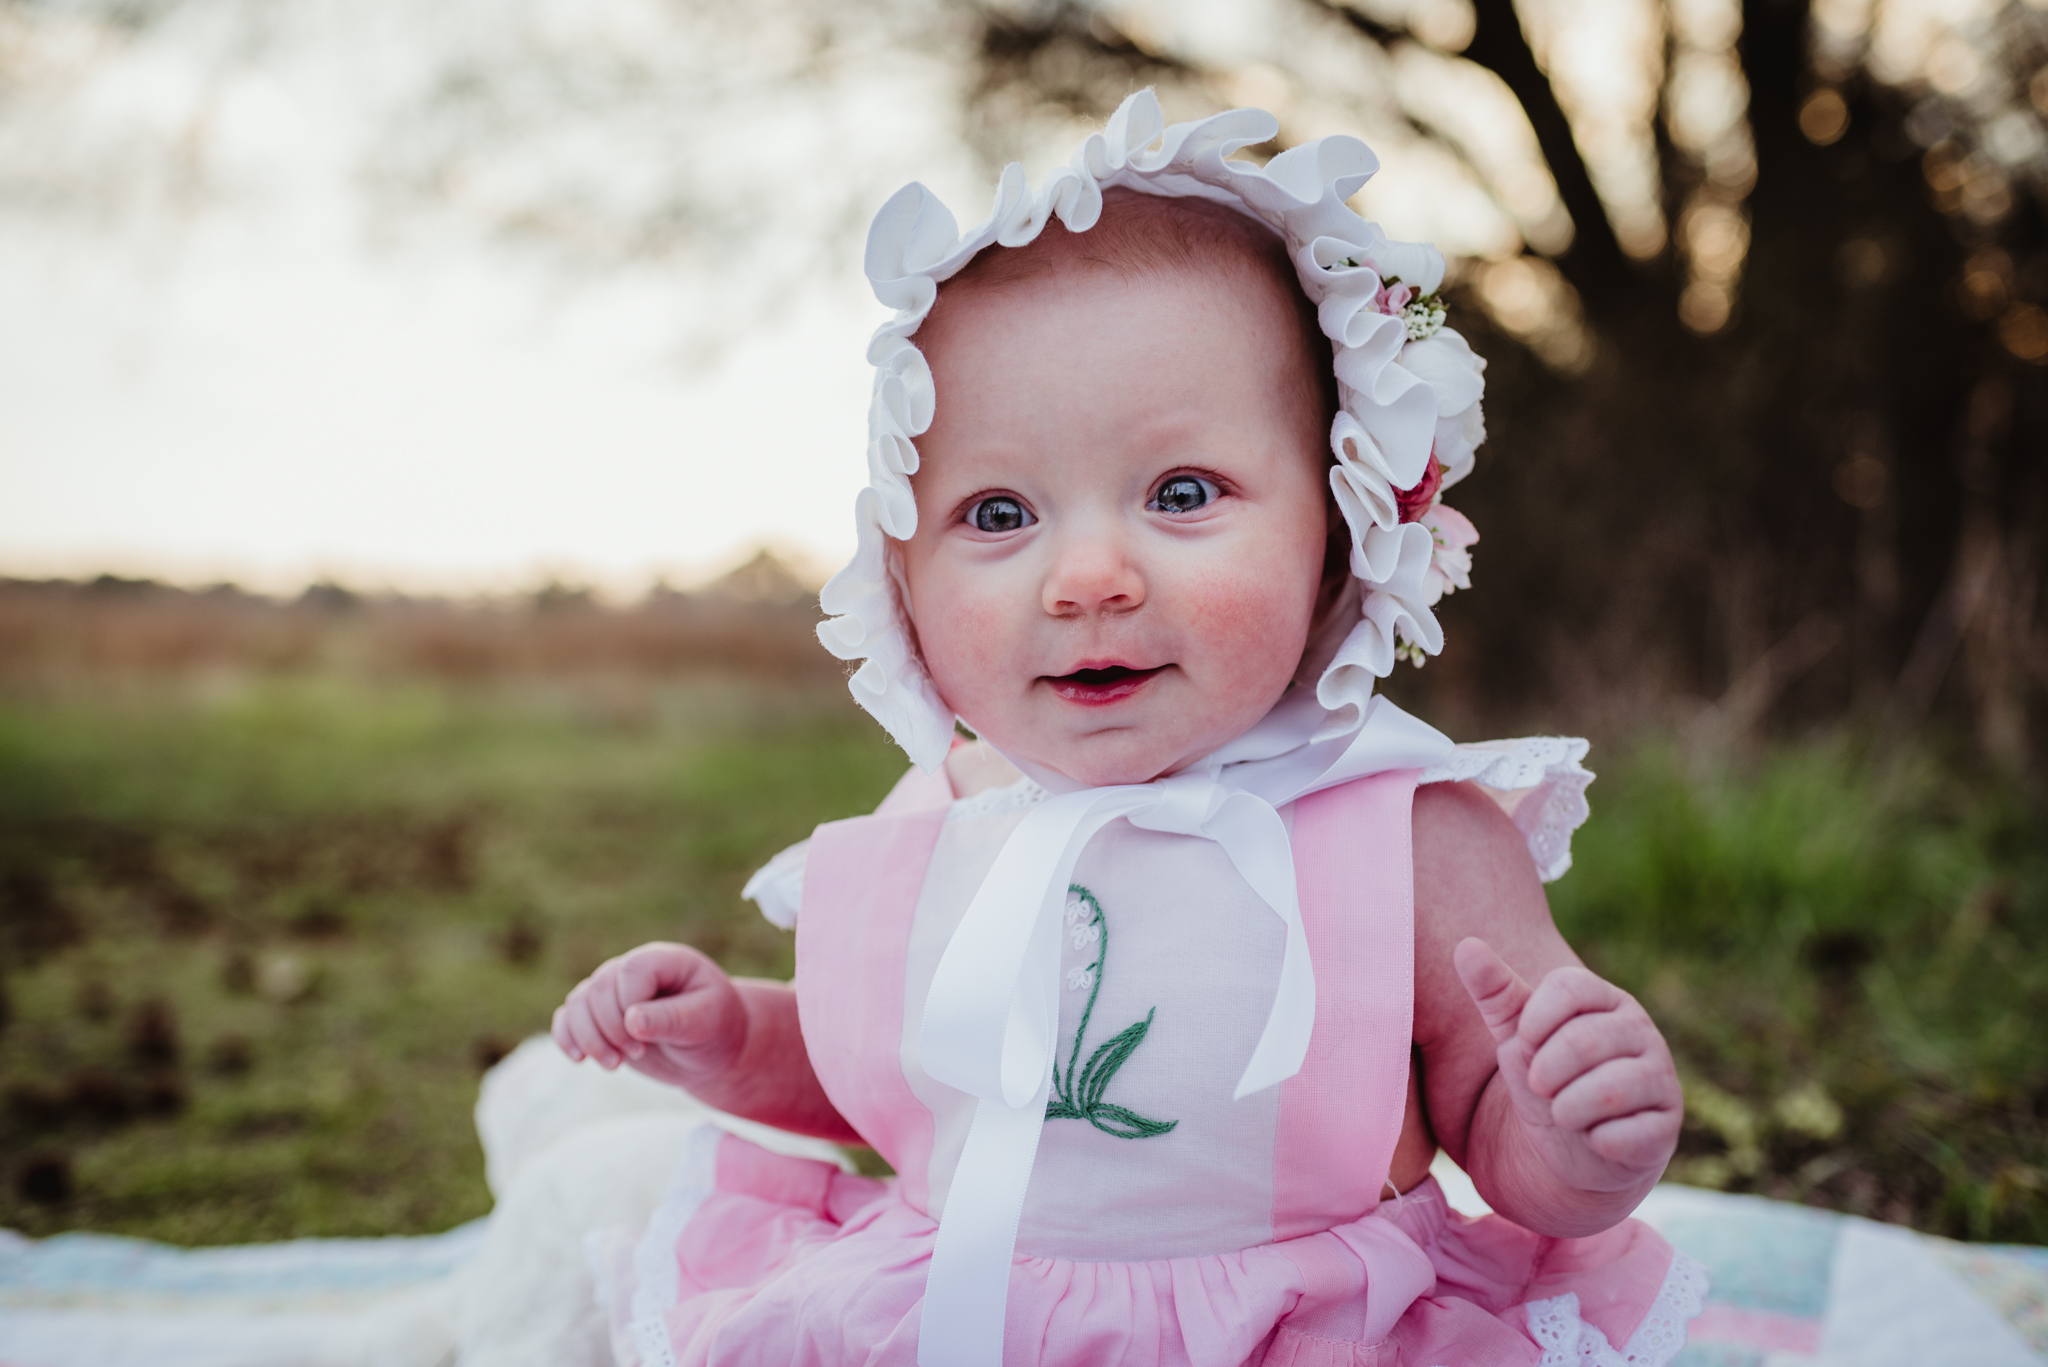 The baby smiles for the camera with her Easter bonnet on at sunset during their family photos with Rose Trail Images at Horseshoe Farm Park in Wake Forest, NC.